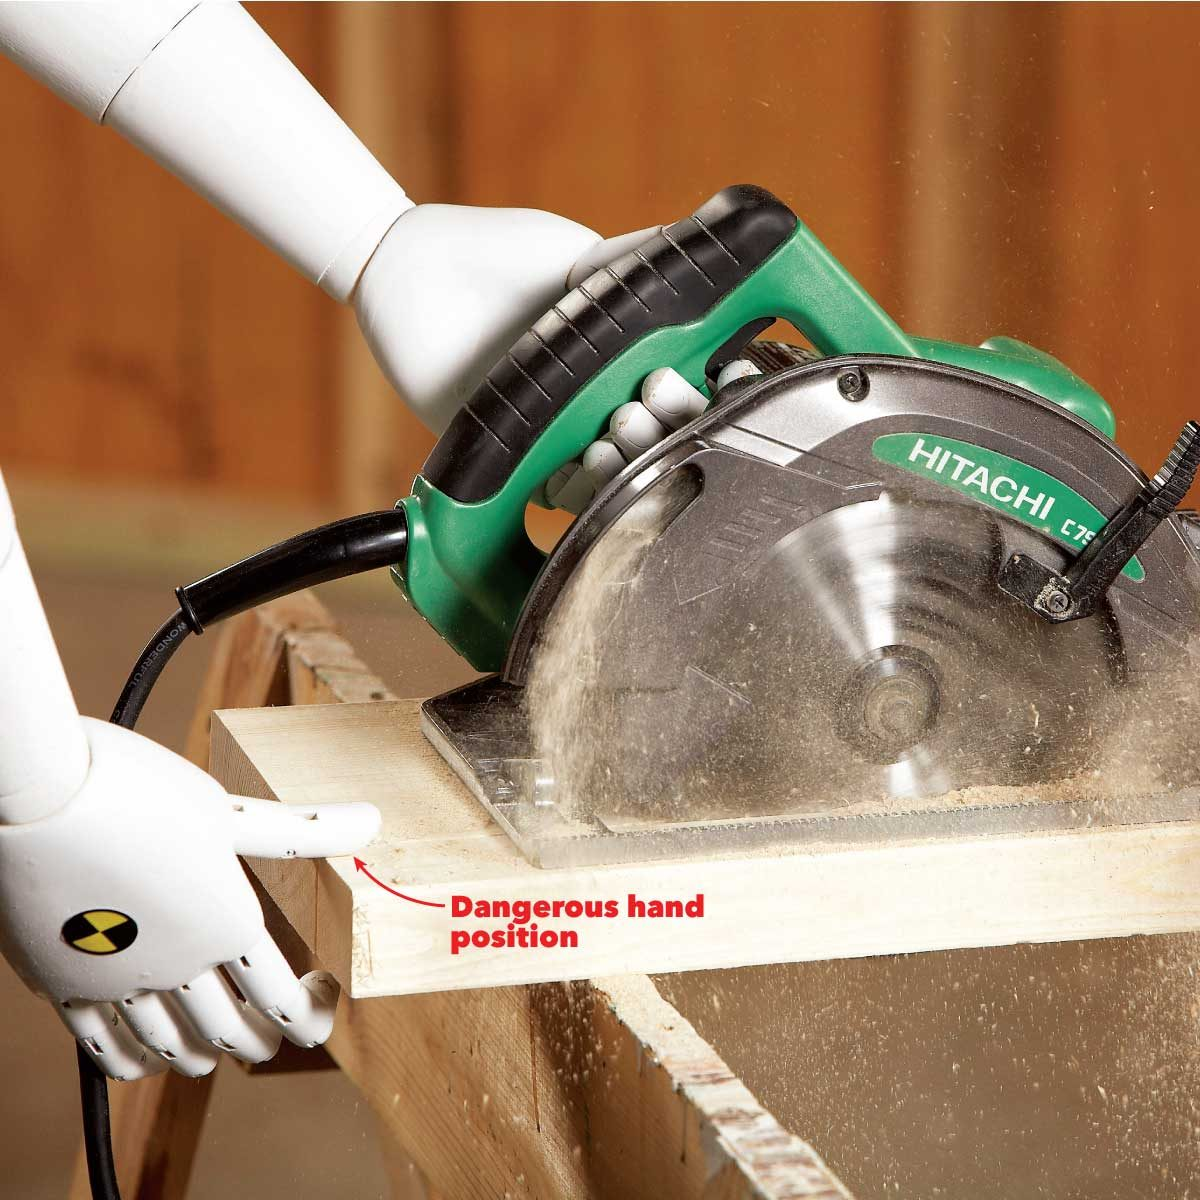 common safety injuries don't put your hand directly behind a circular saw